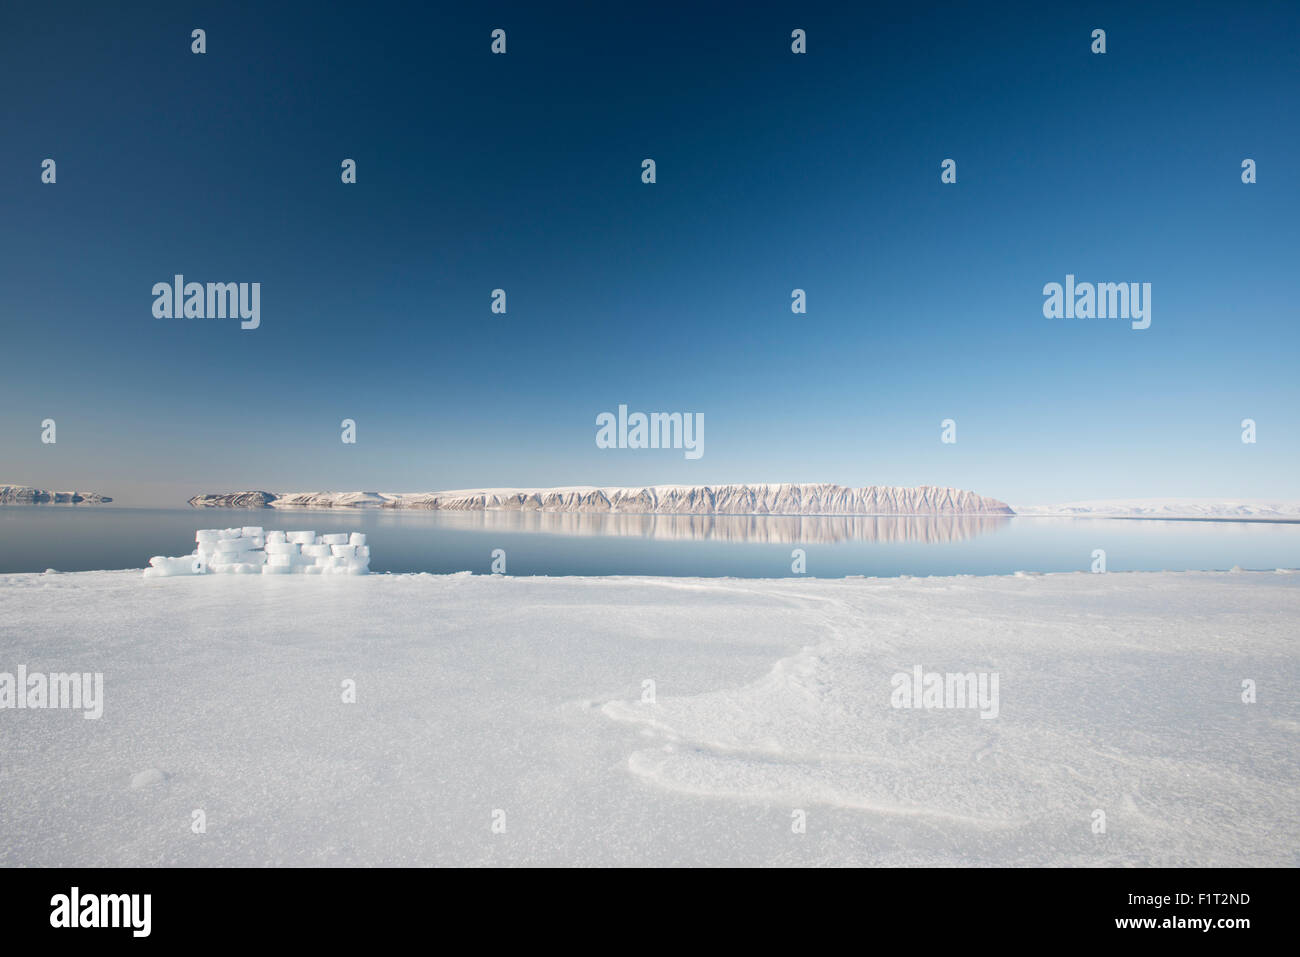 Hunting blind made from ice blocks at the Floe edge, the junction of sea ice and the ocean, Greenland, Denmark - Stock Image